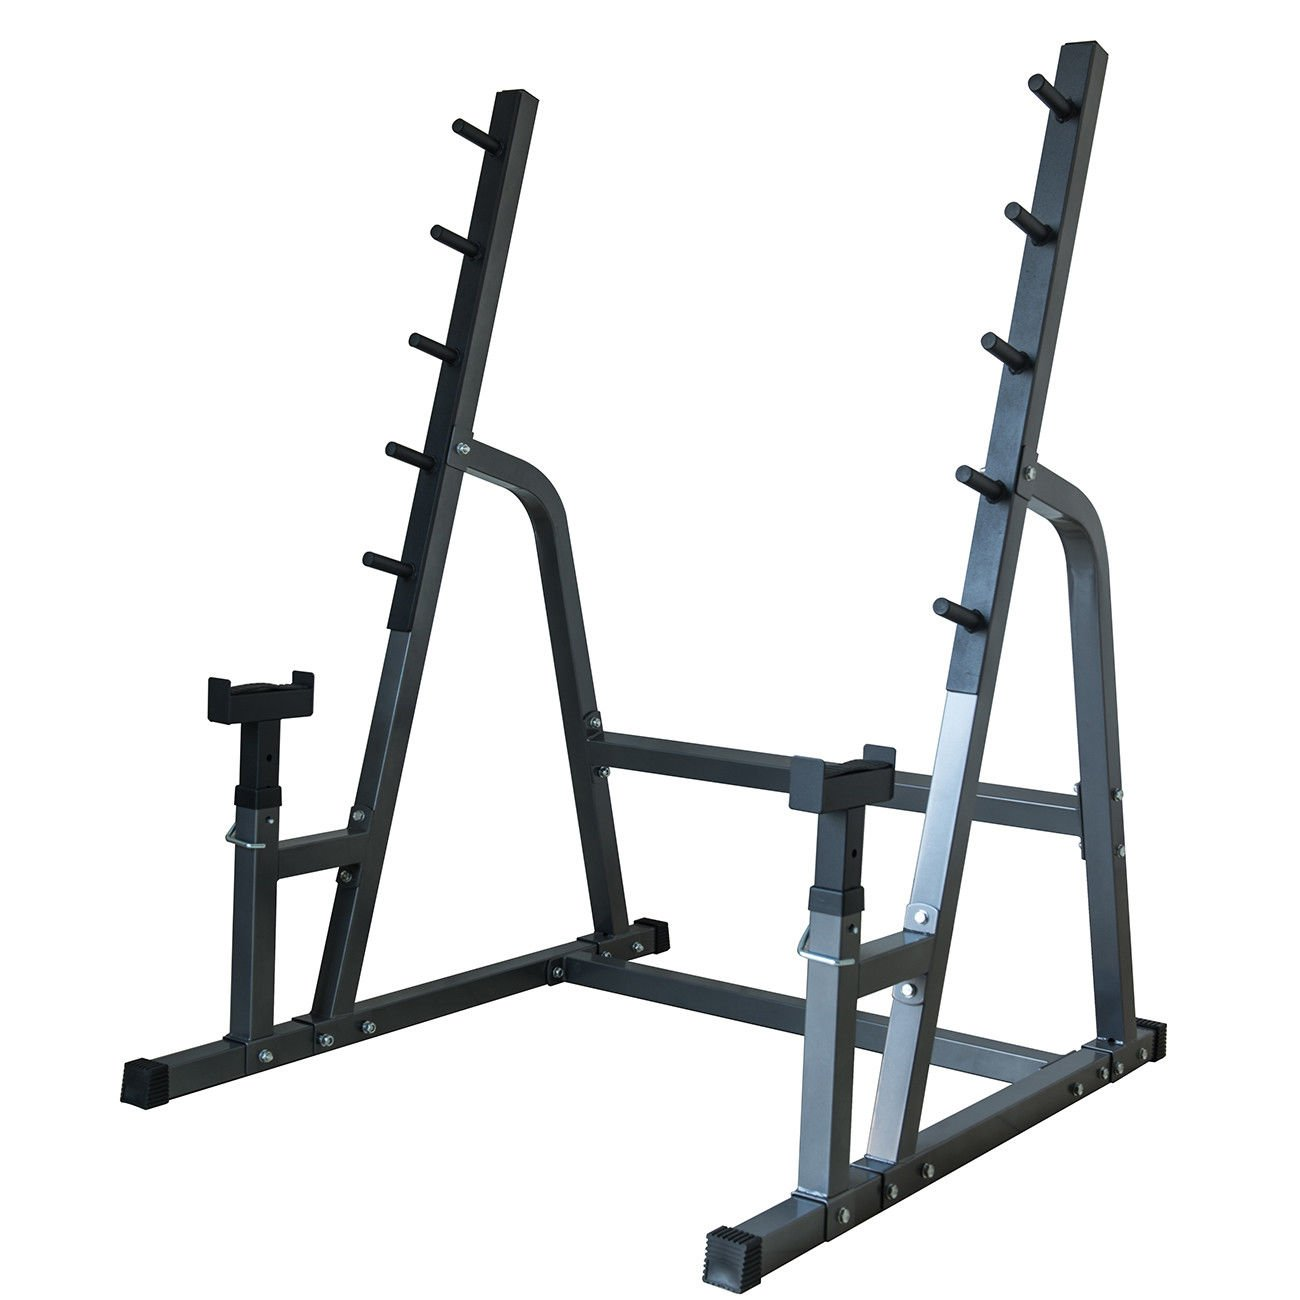 Deluxe Squat/Bench Combo Rack Fitness Exercise Equipment Safety Function Set